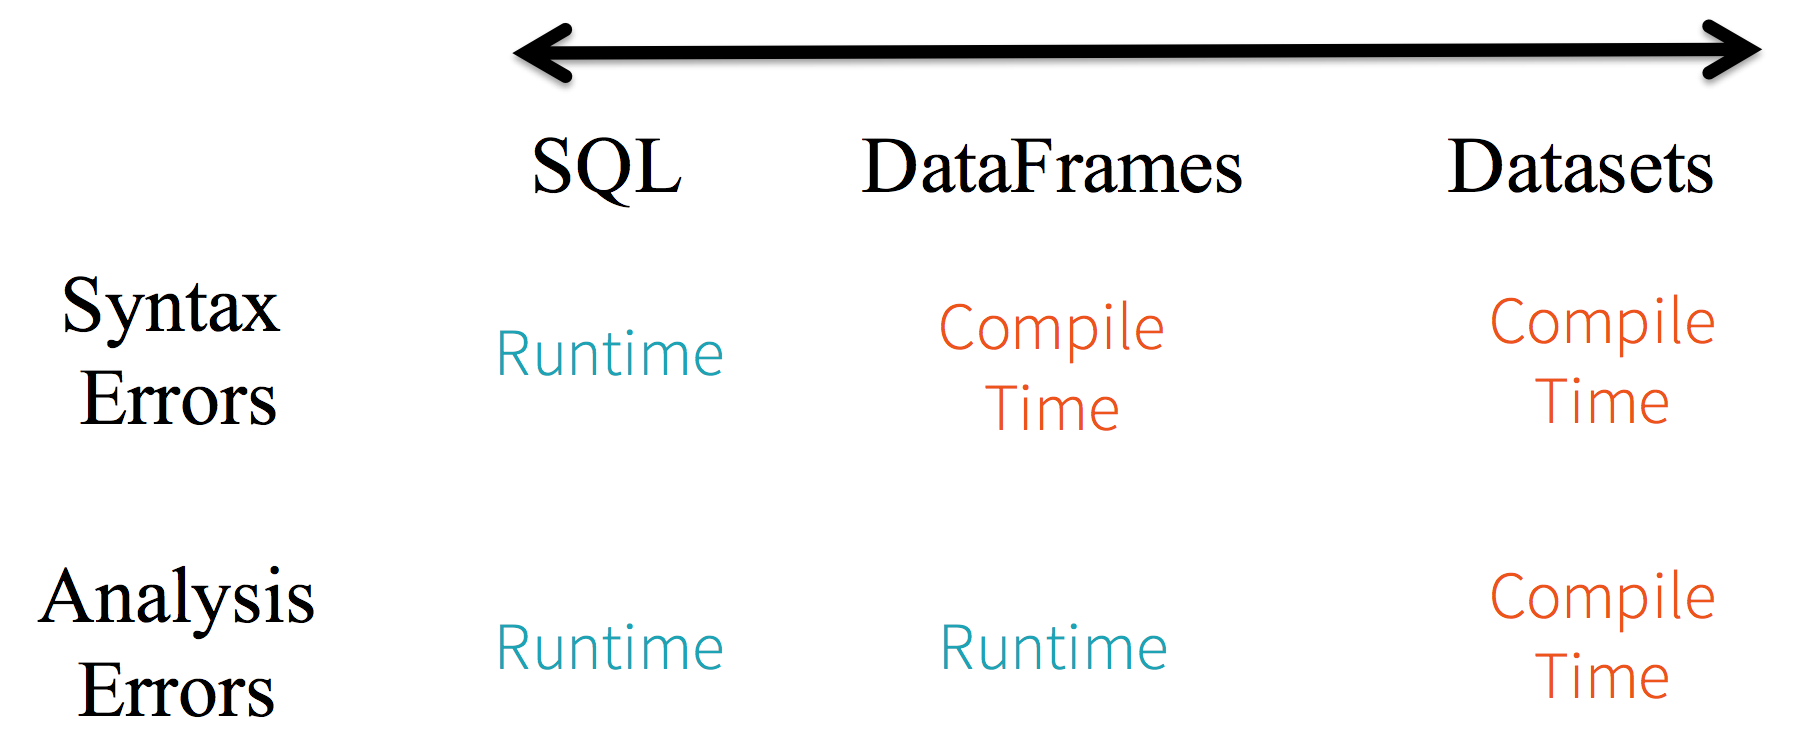 Type-safety spectrum between SQL, DataFrames and Datasets